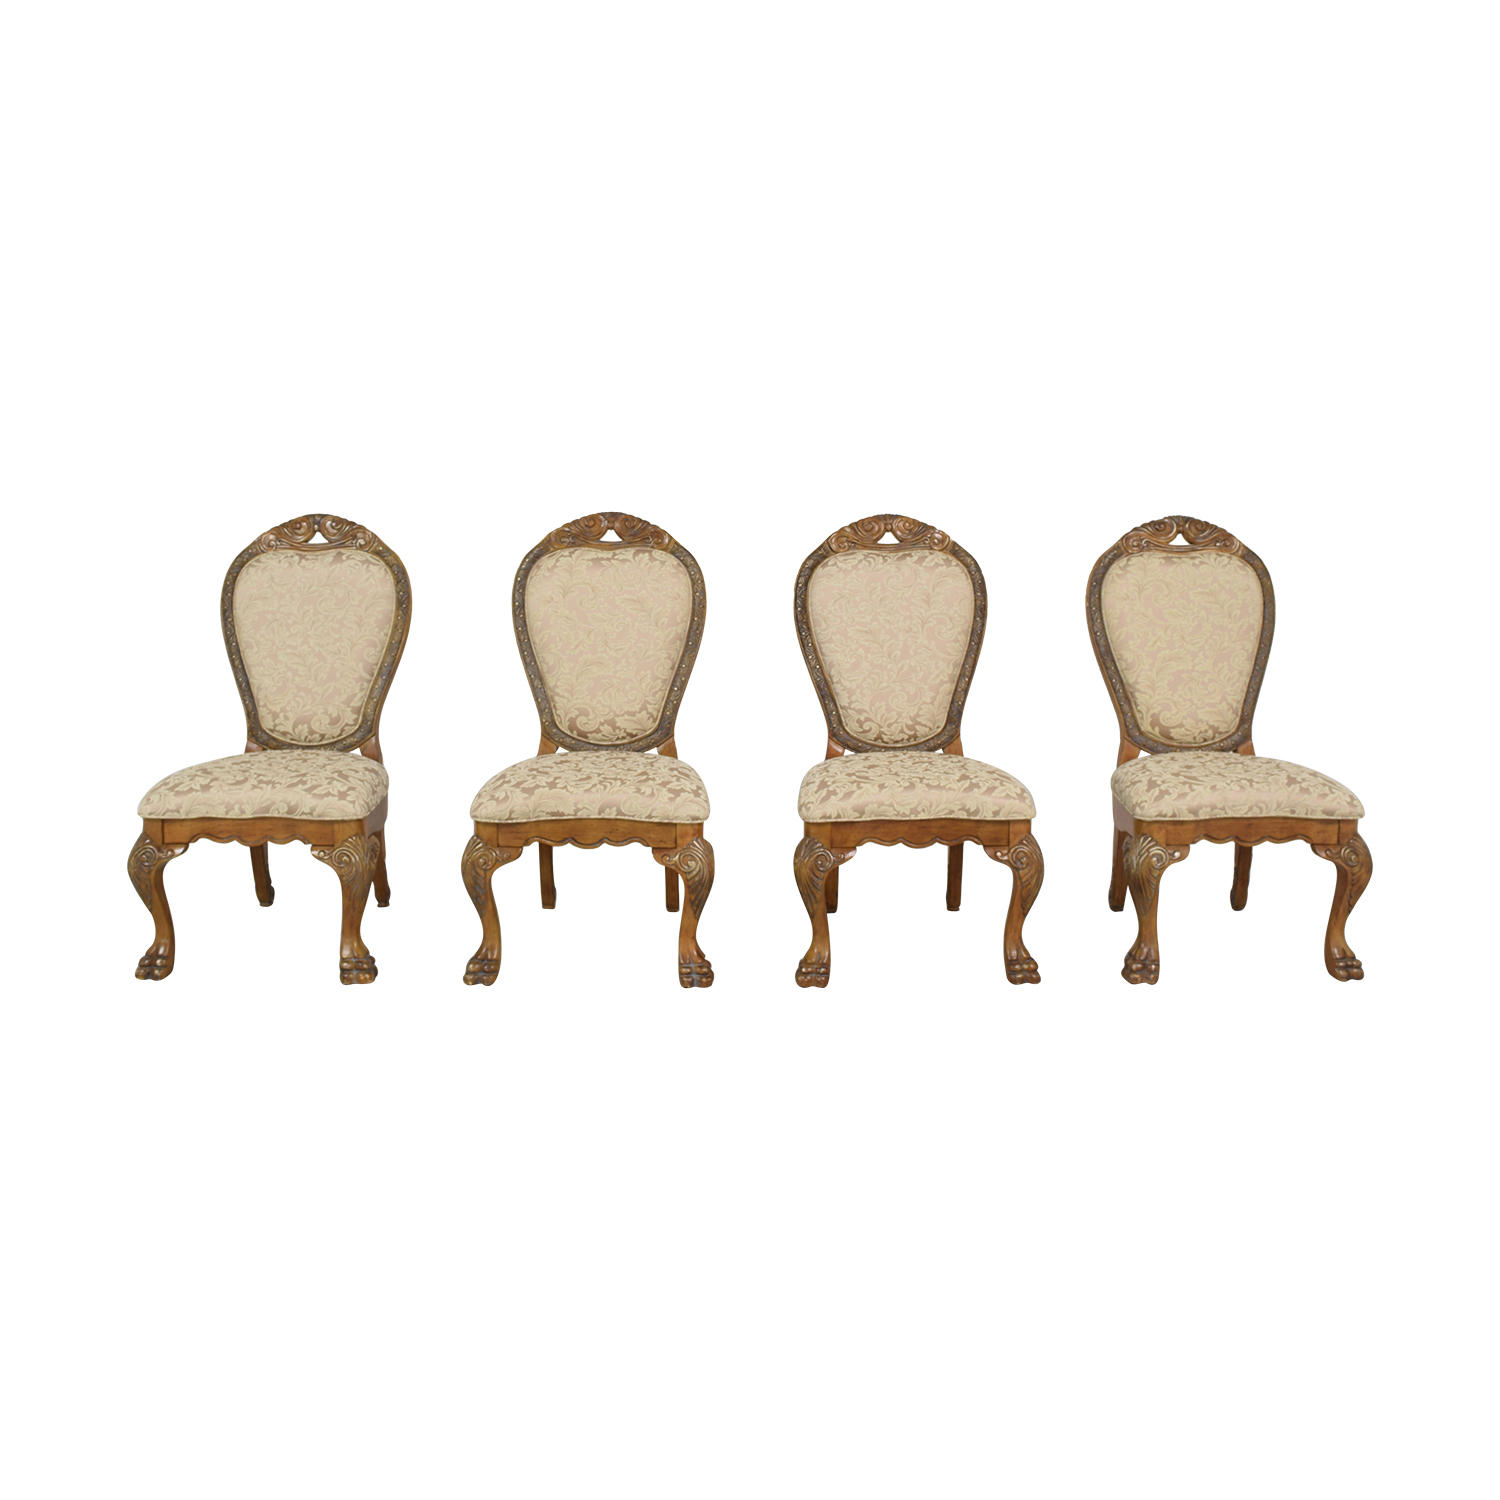 Michael Amini Upholstered Dining Chairs sale